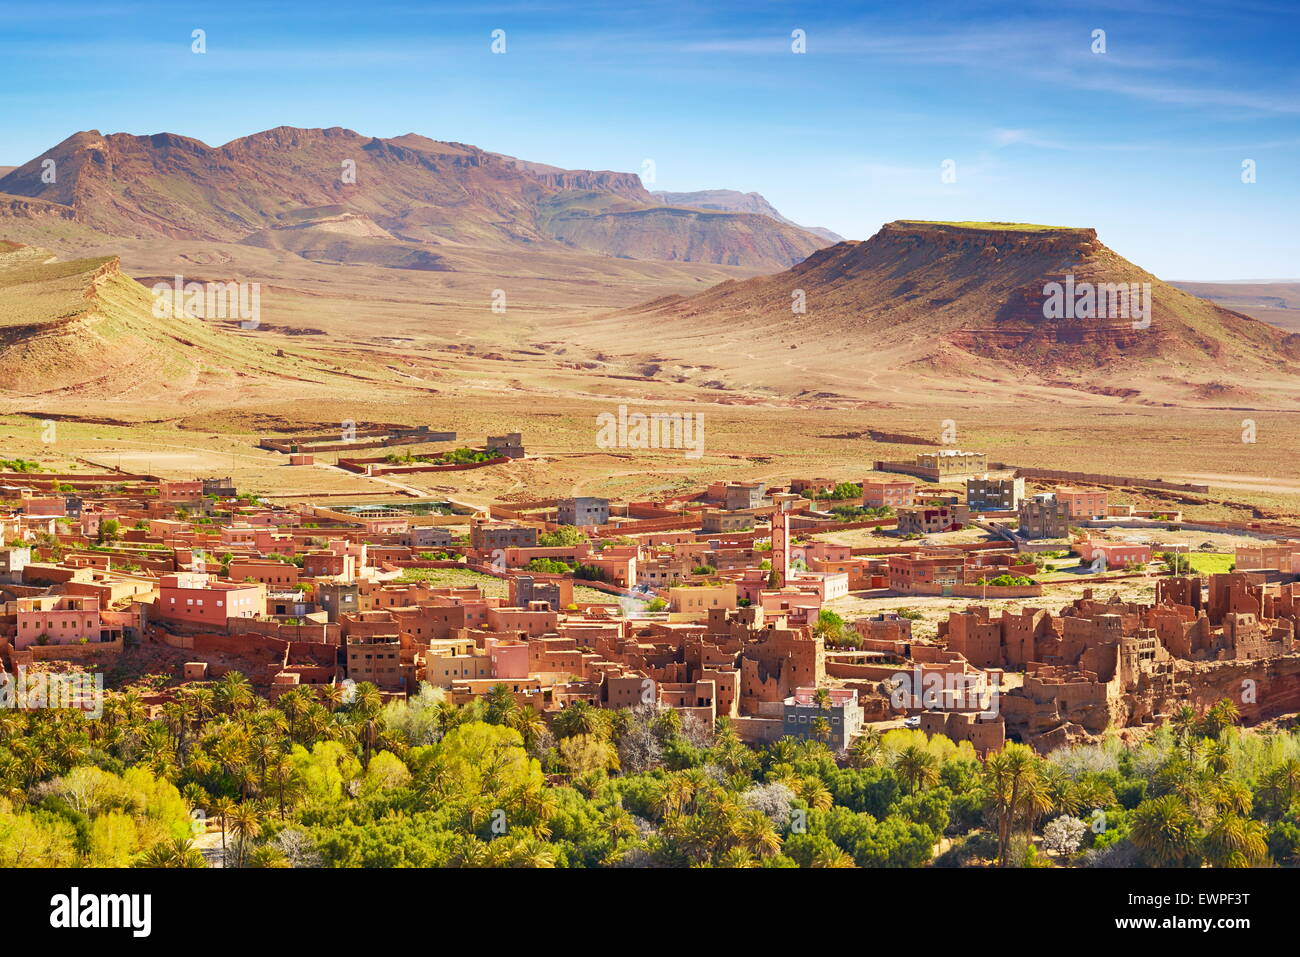 Tinghir, Todra region.  Atlas Mountain region, Morocco - Stock Image